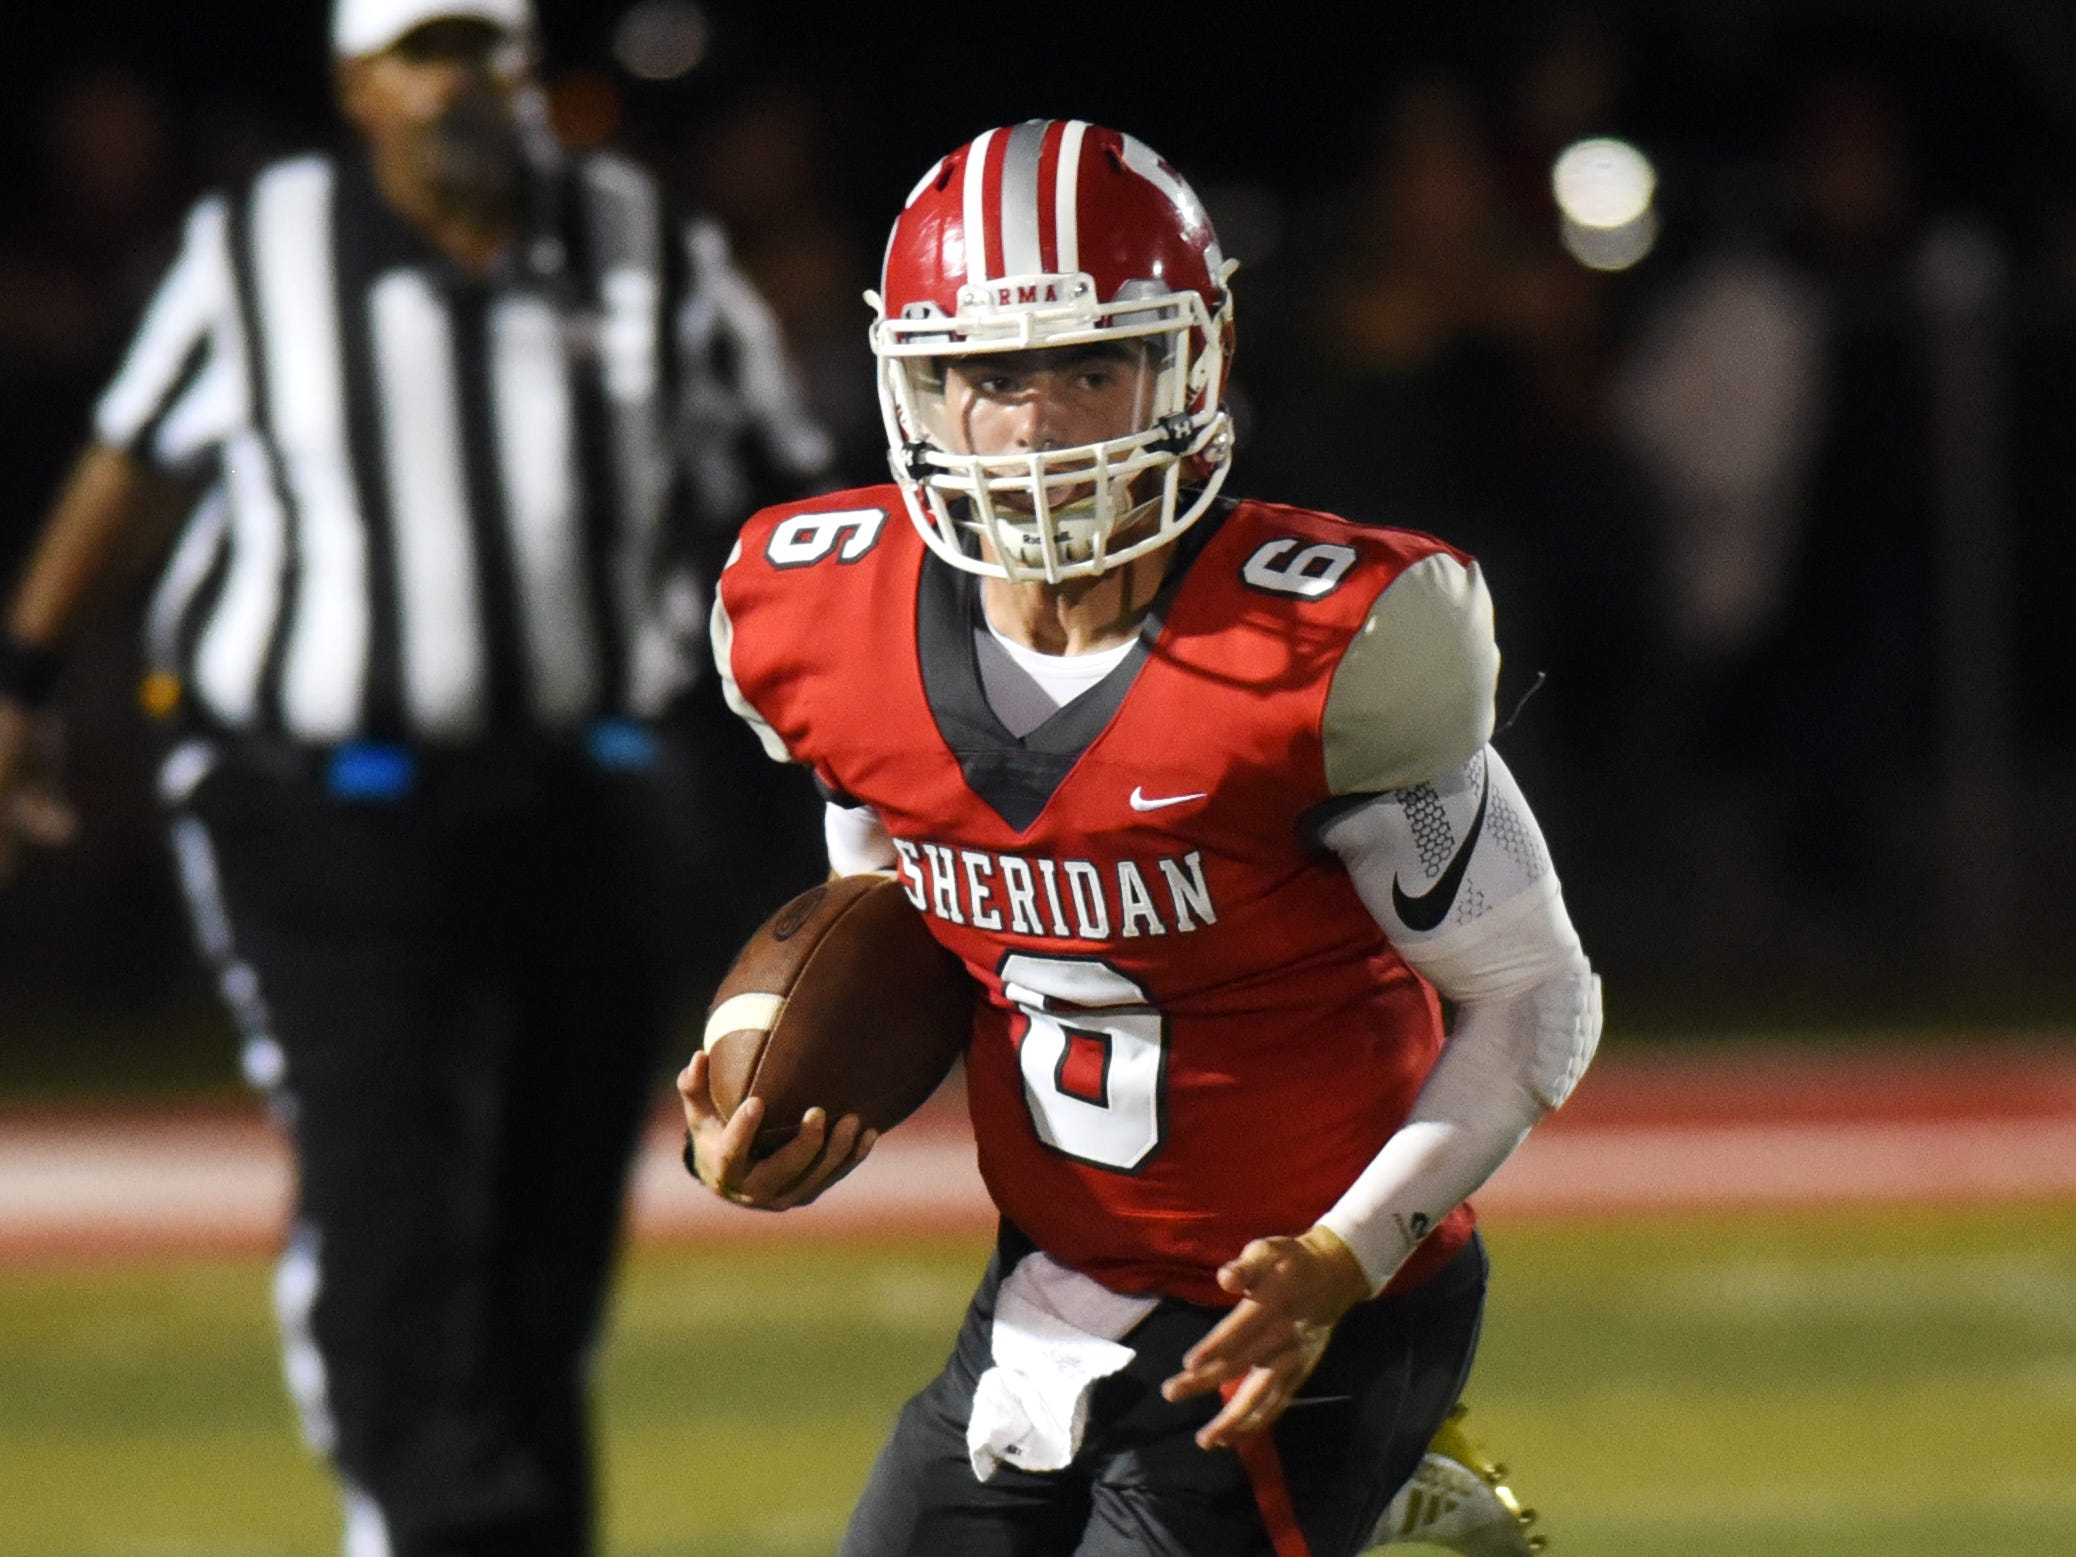 The Sheridan offense has presented its fair share of problems to opposing defenses, as quarterback Ethan Heller has guided the Generals to 45 points per game.